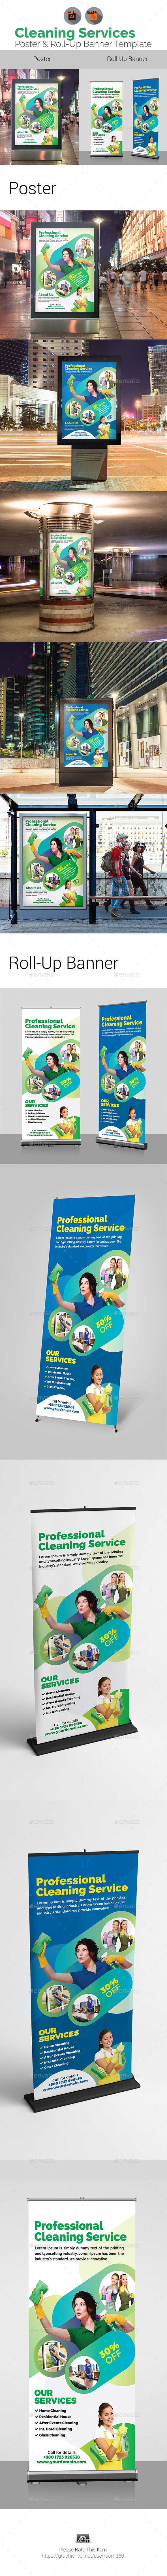 Clean Services Poster & Roll-Up Bundle - Signage Print Templates